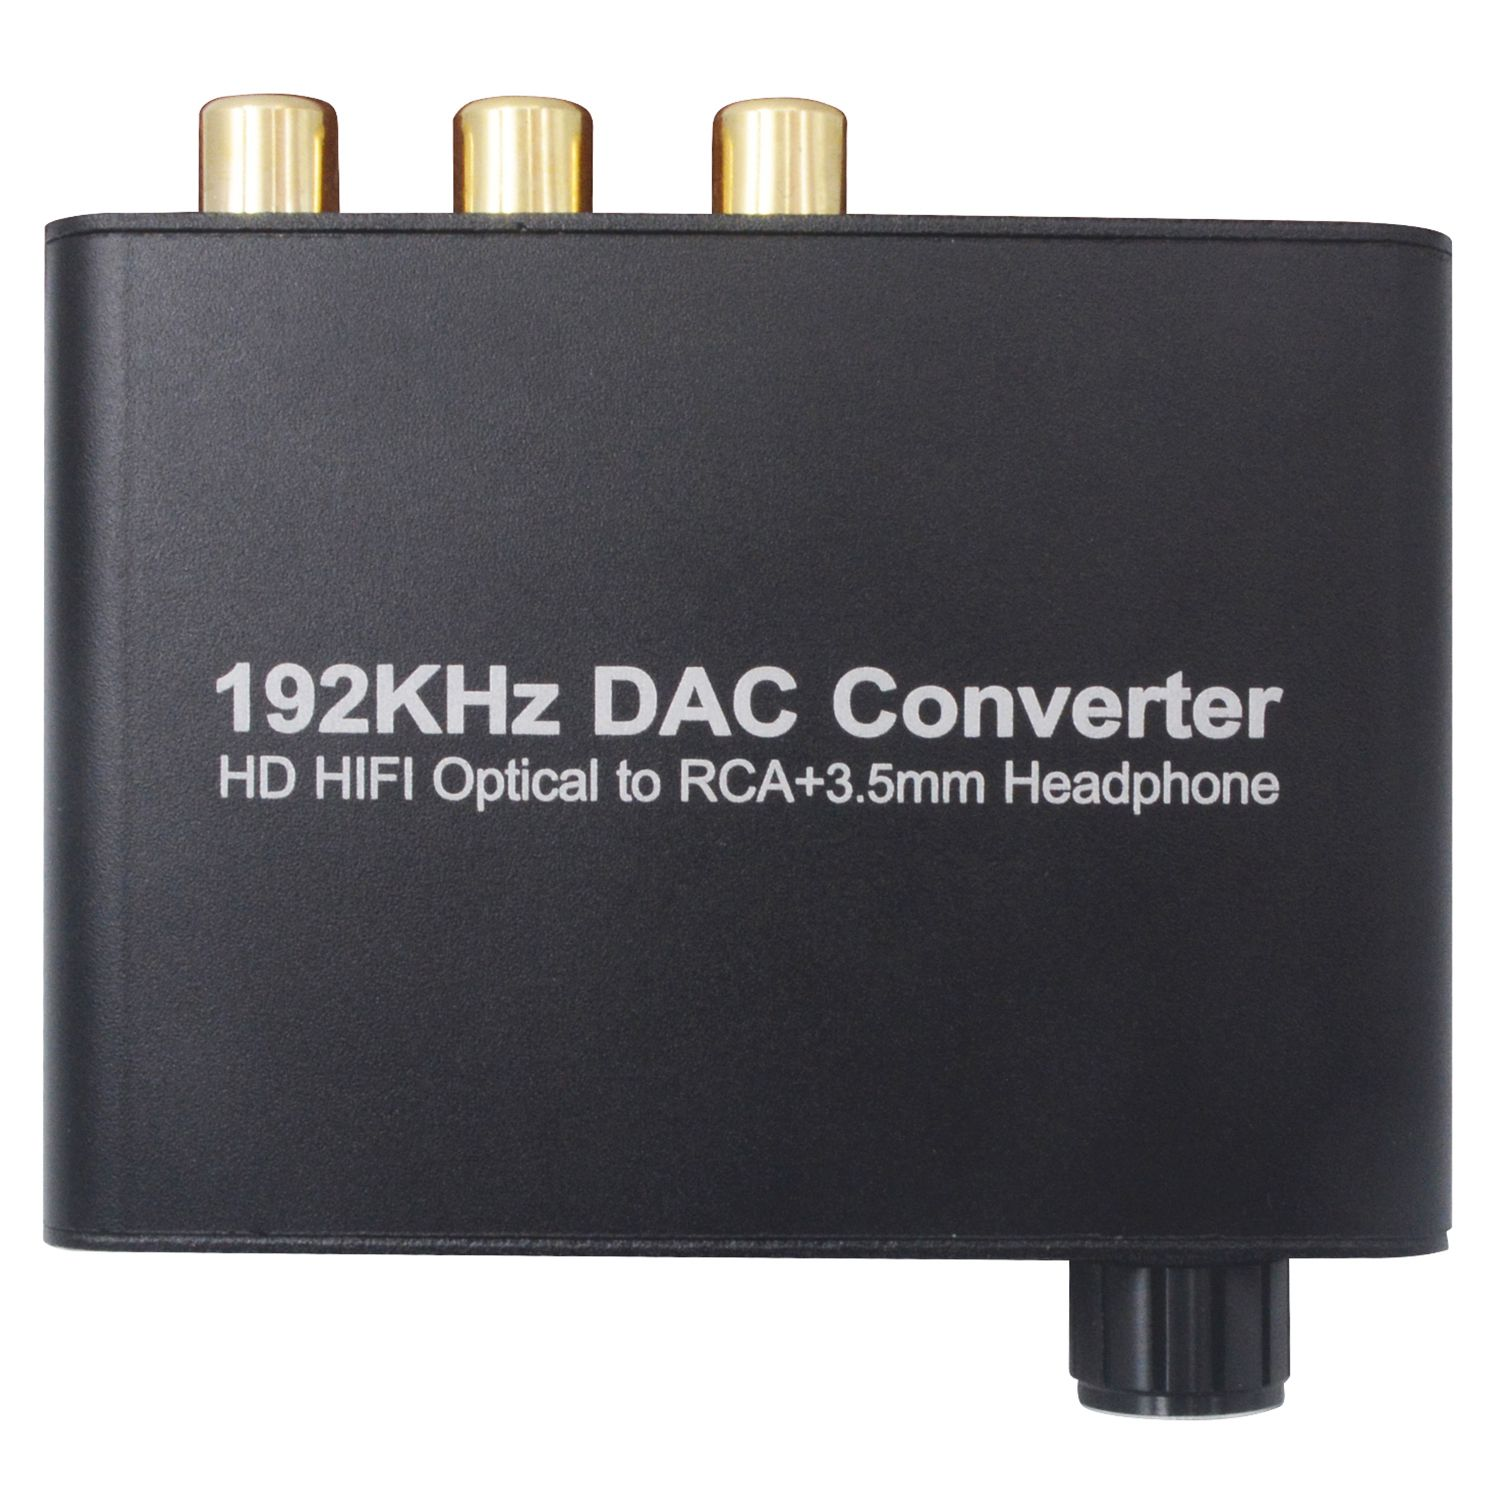 192kHz DAC Fiber Coaxial Converter 5.1 HD Digital Audio Decoder Support AC-3 / DTS Volume Adjustment Decoder new upgraded mocha hq m5 x 3b dts ac 3 digital audio decoder 220v only